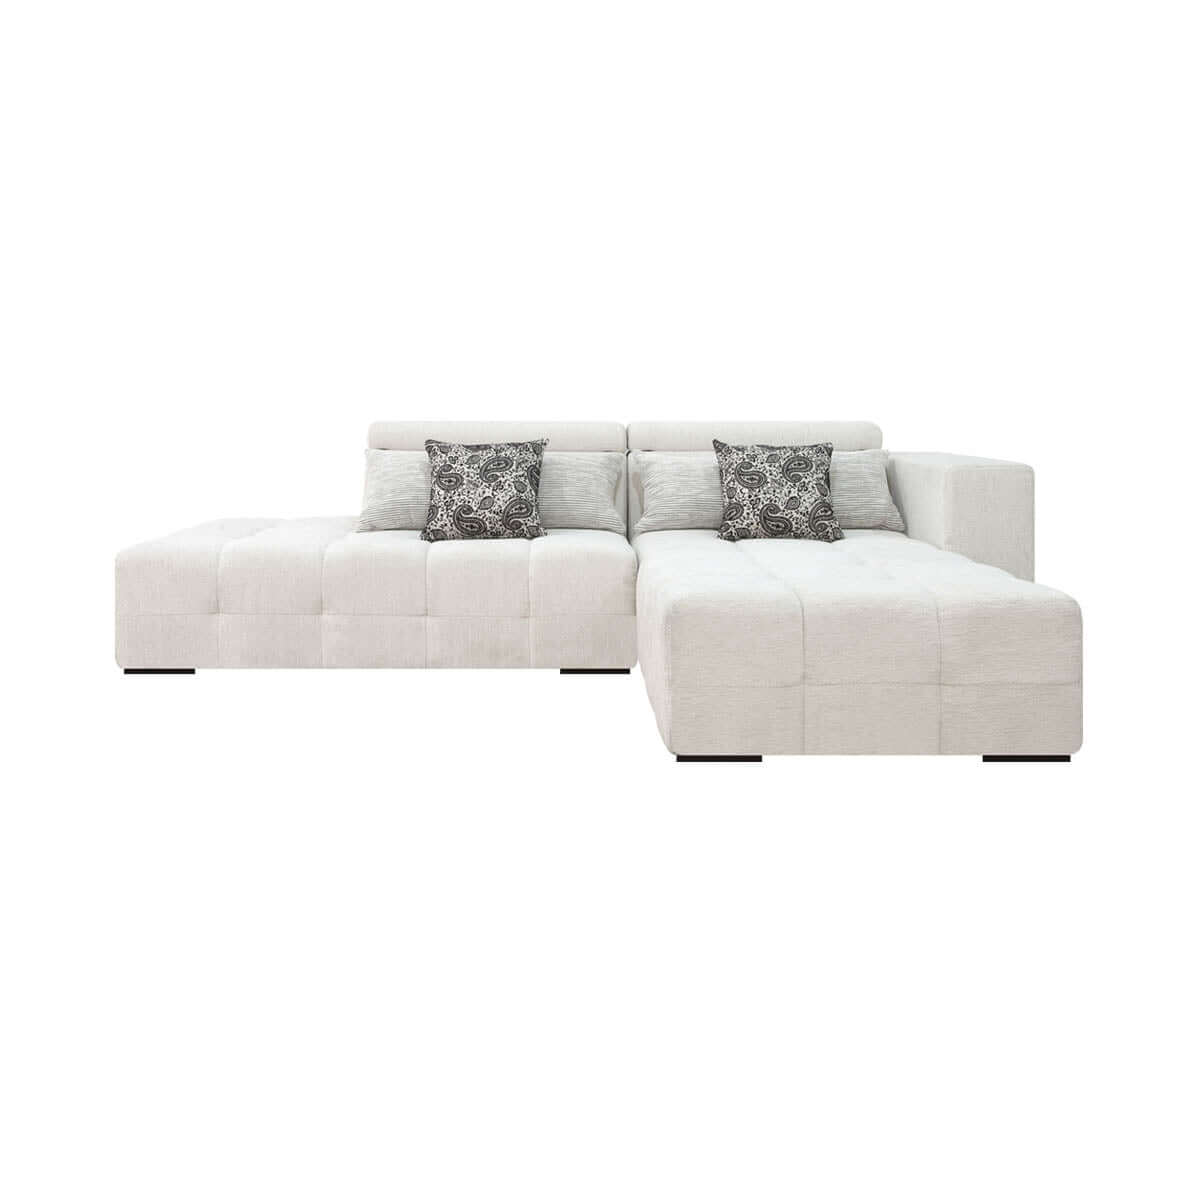 sofa with two and a half seats and movable headrest